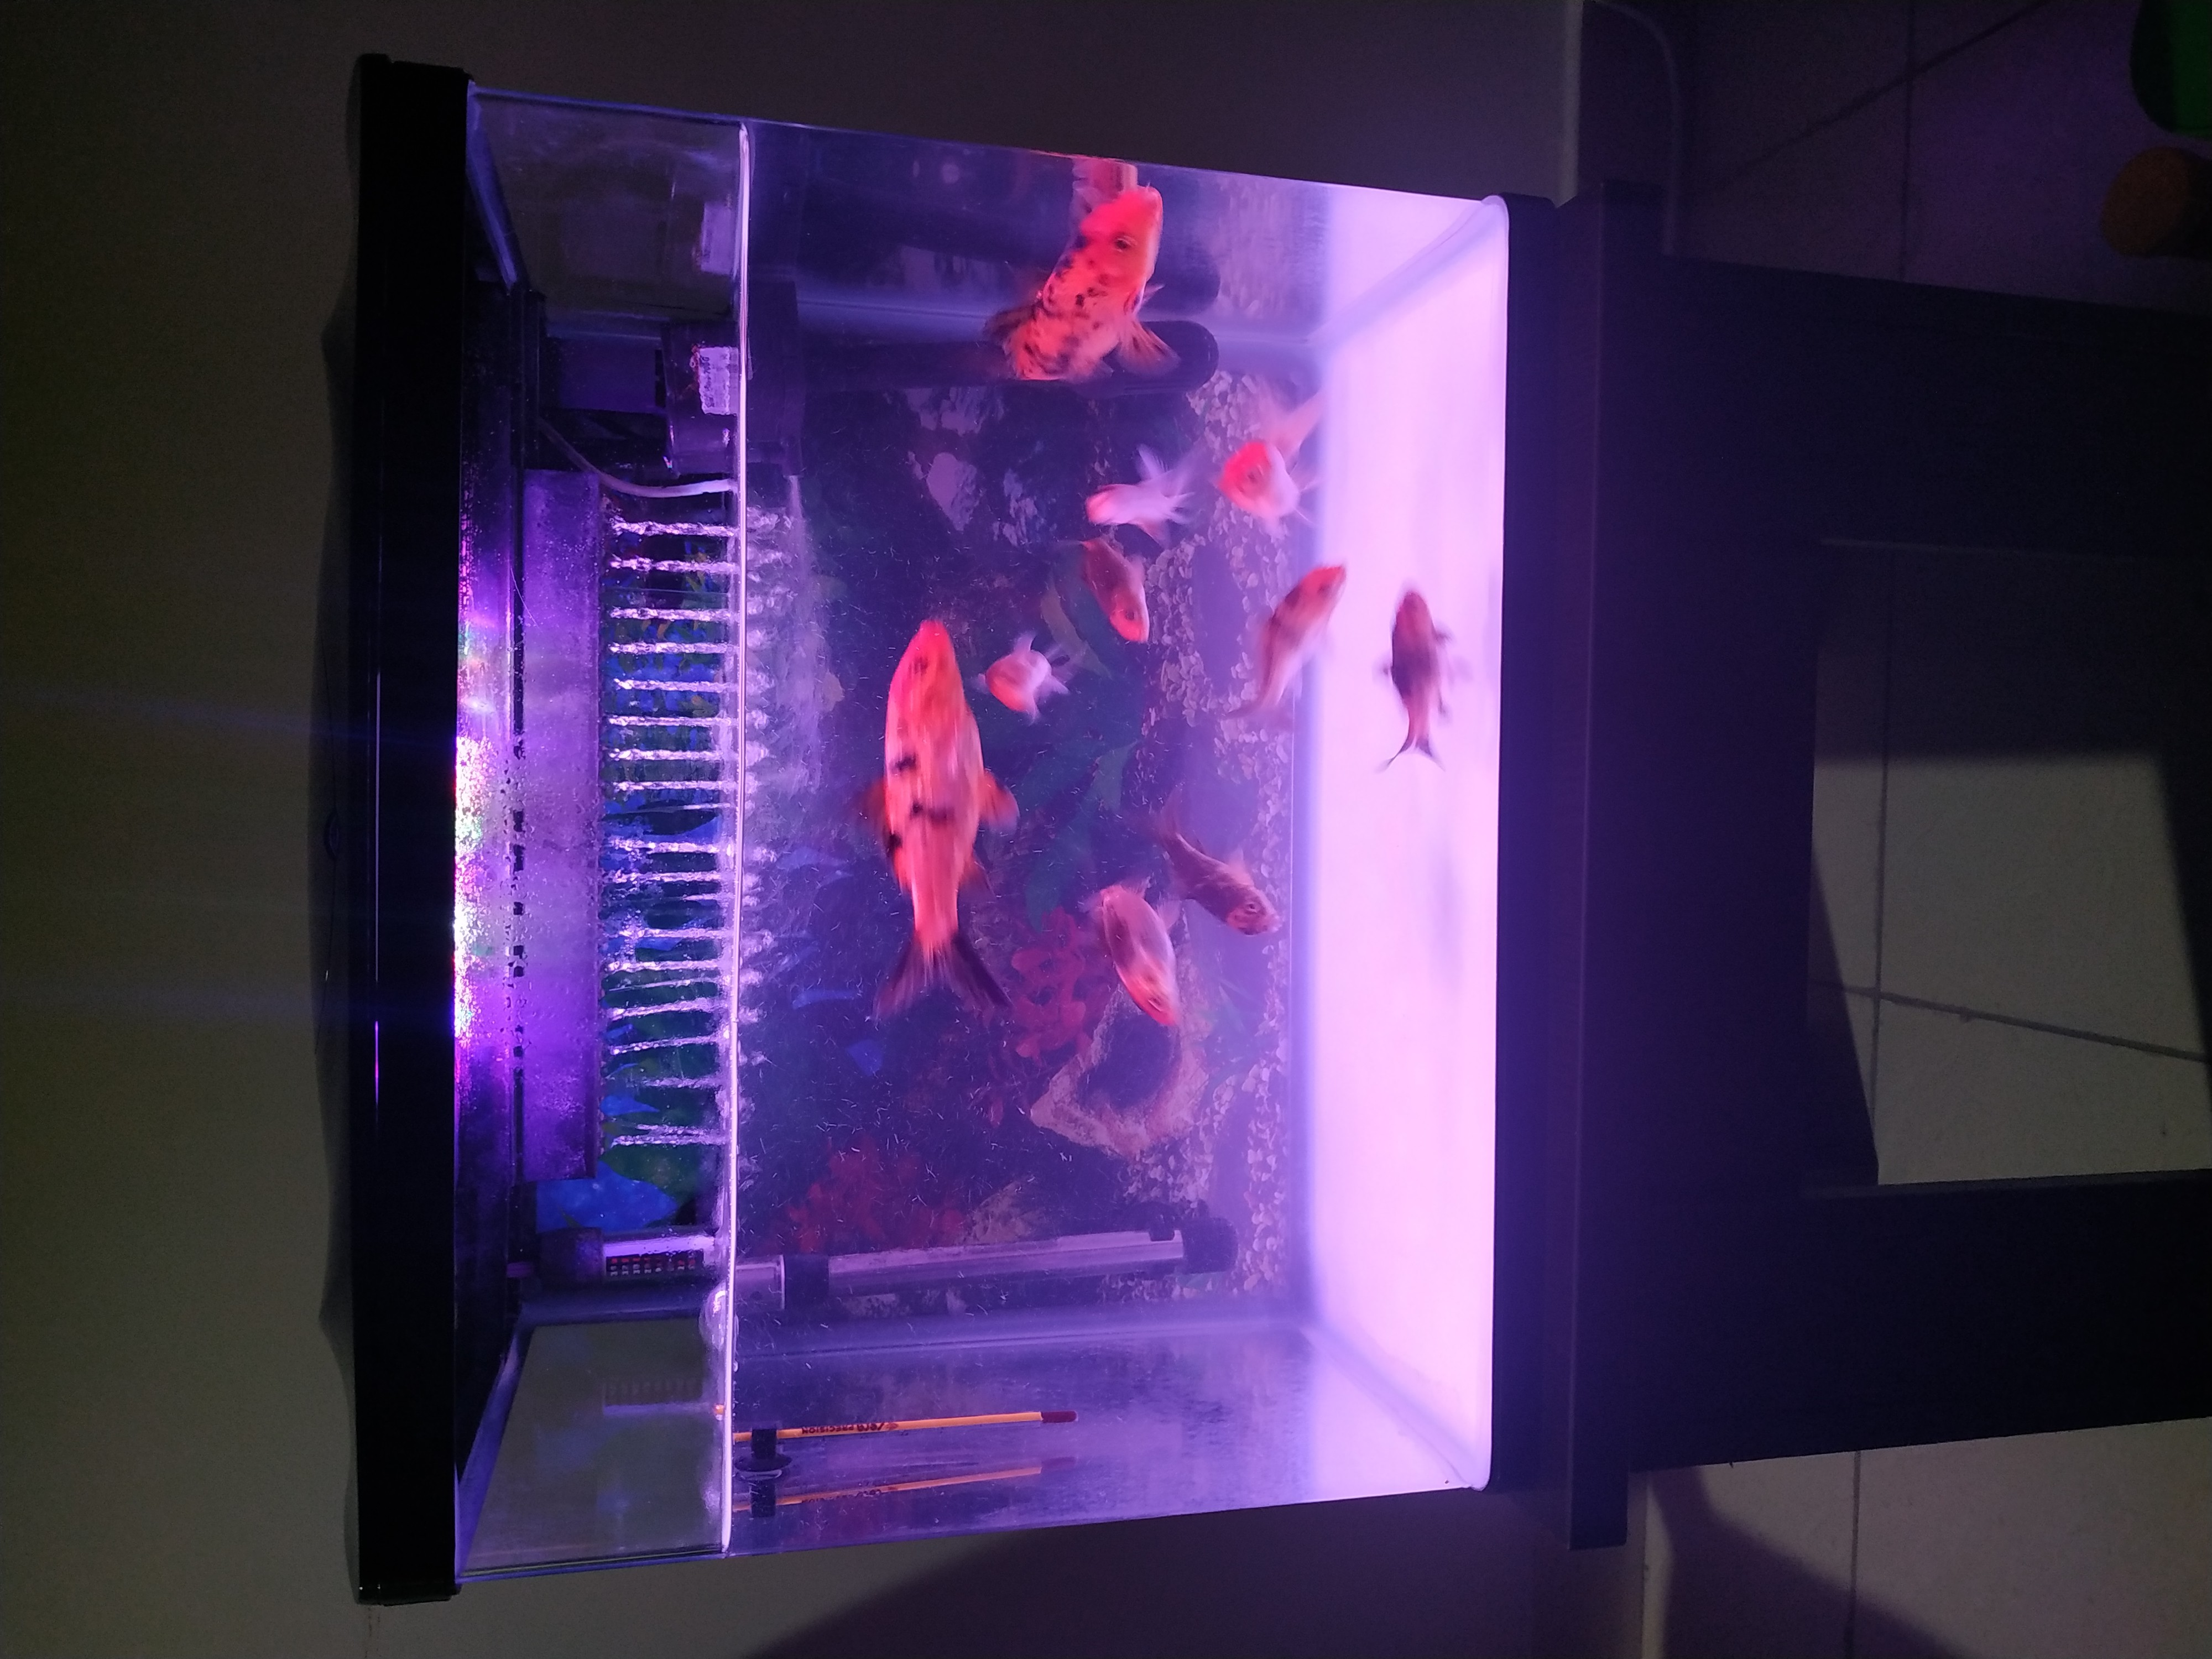 Fish tank for sale with fishes